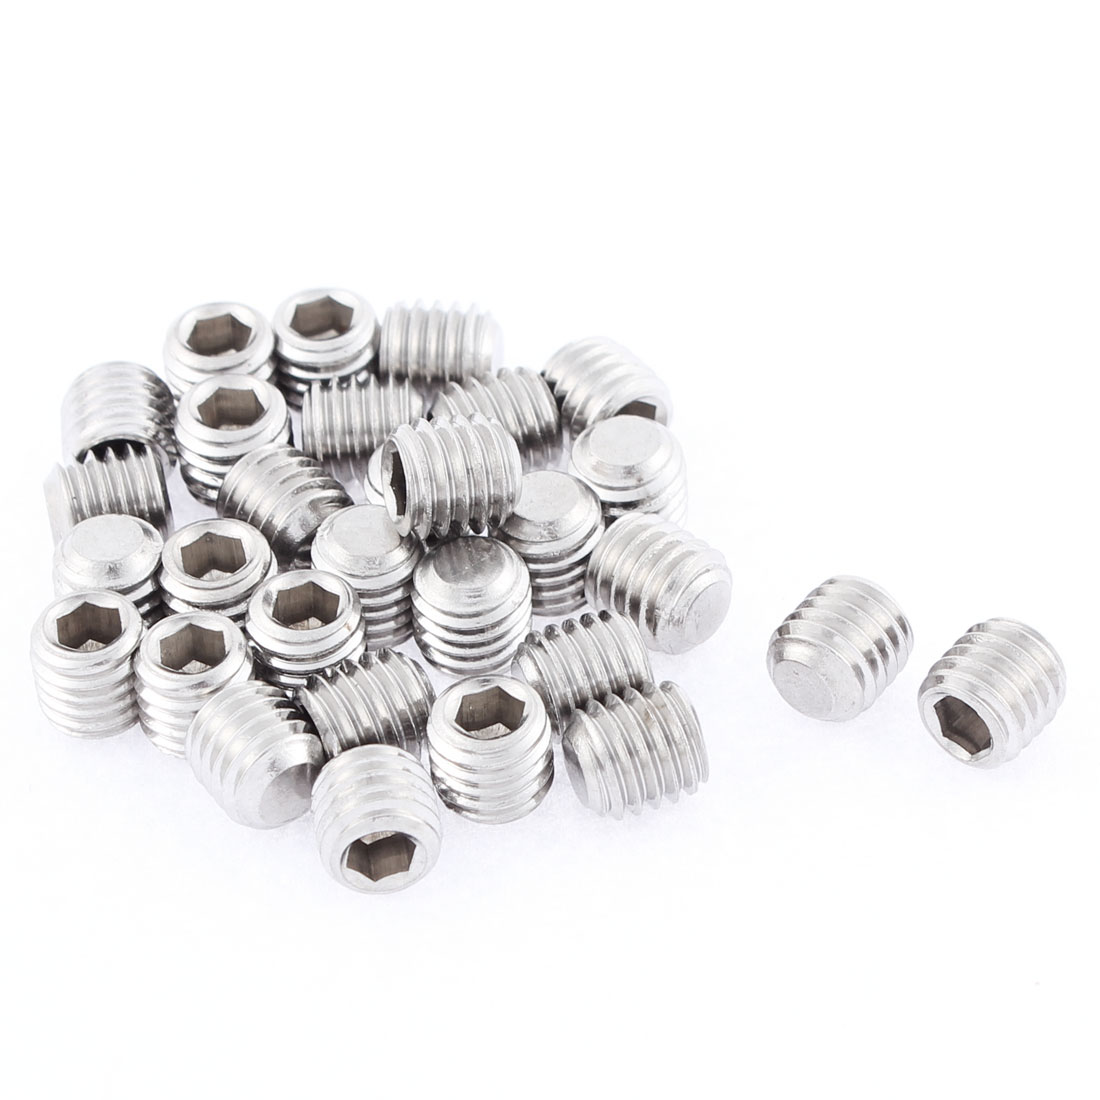 M8x8mm 1.25mm Pitch Stainless Steel Hex Socket Set Flat Point Grub Screws 30pcs